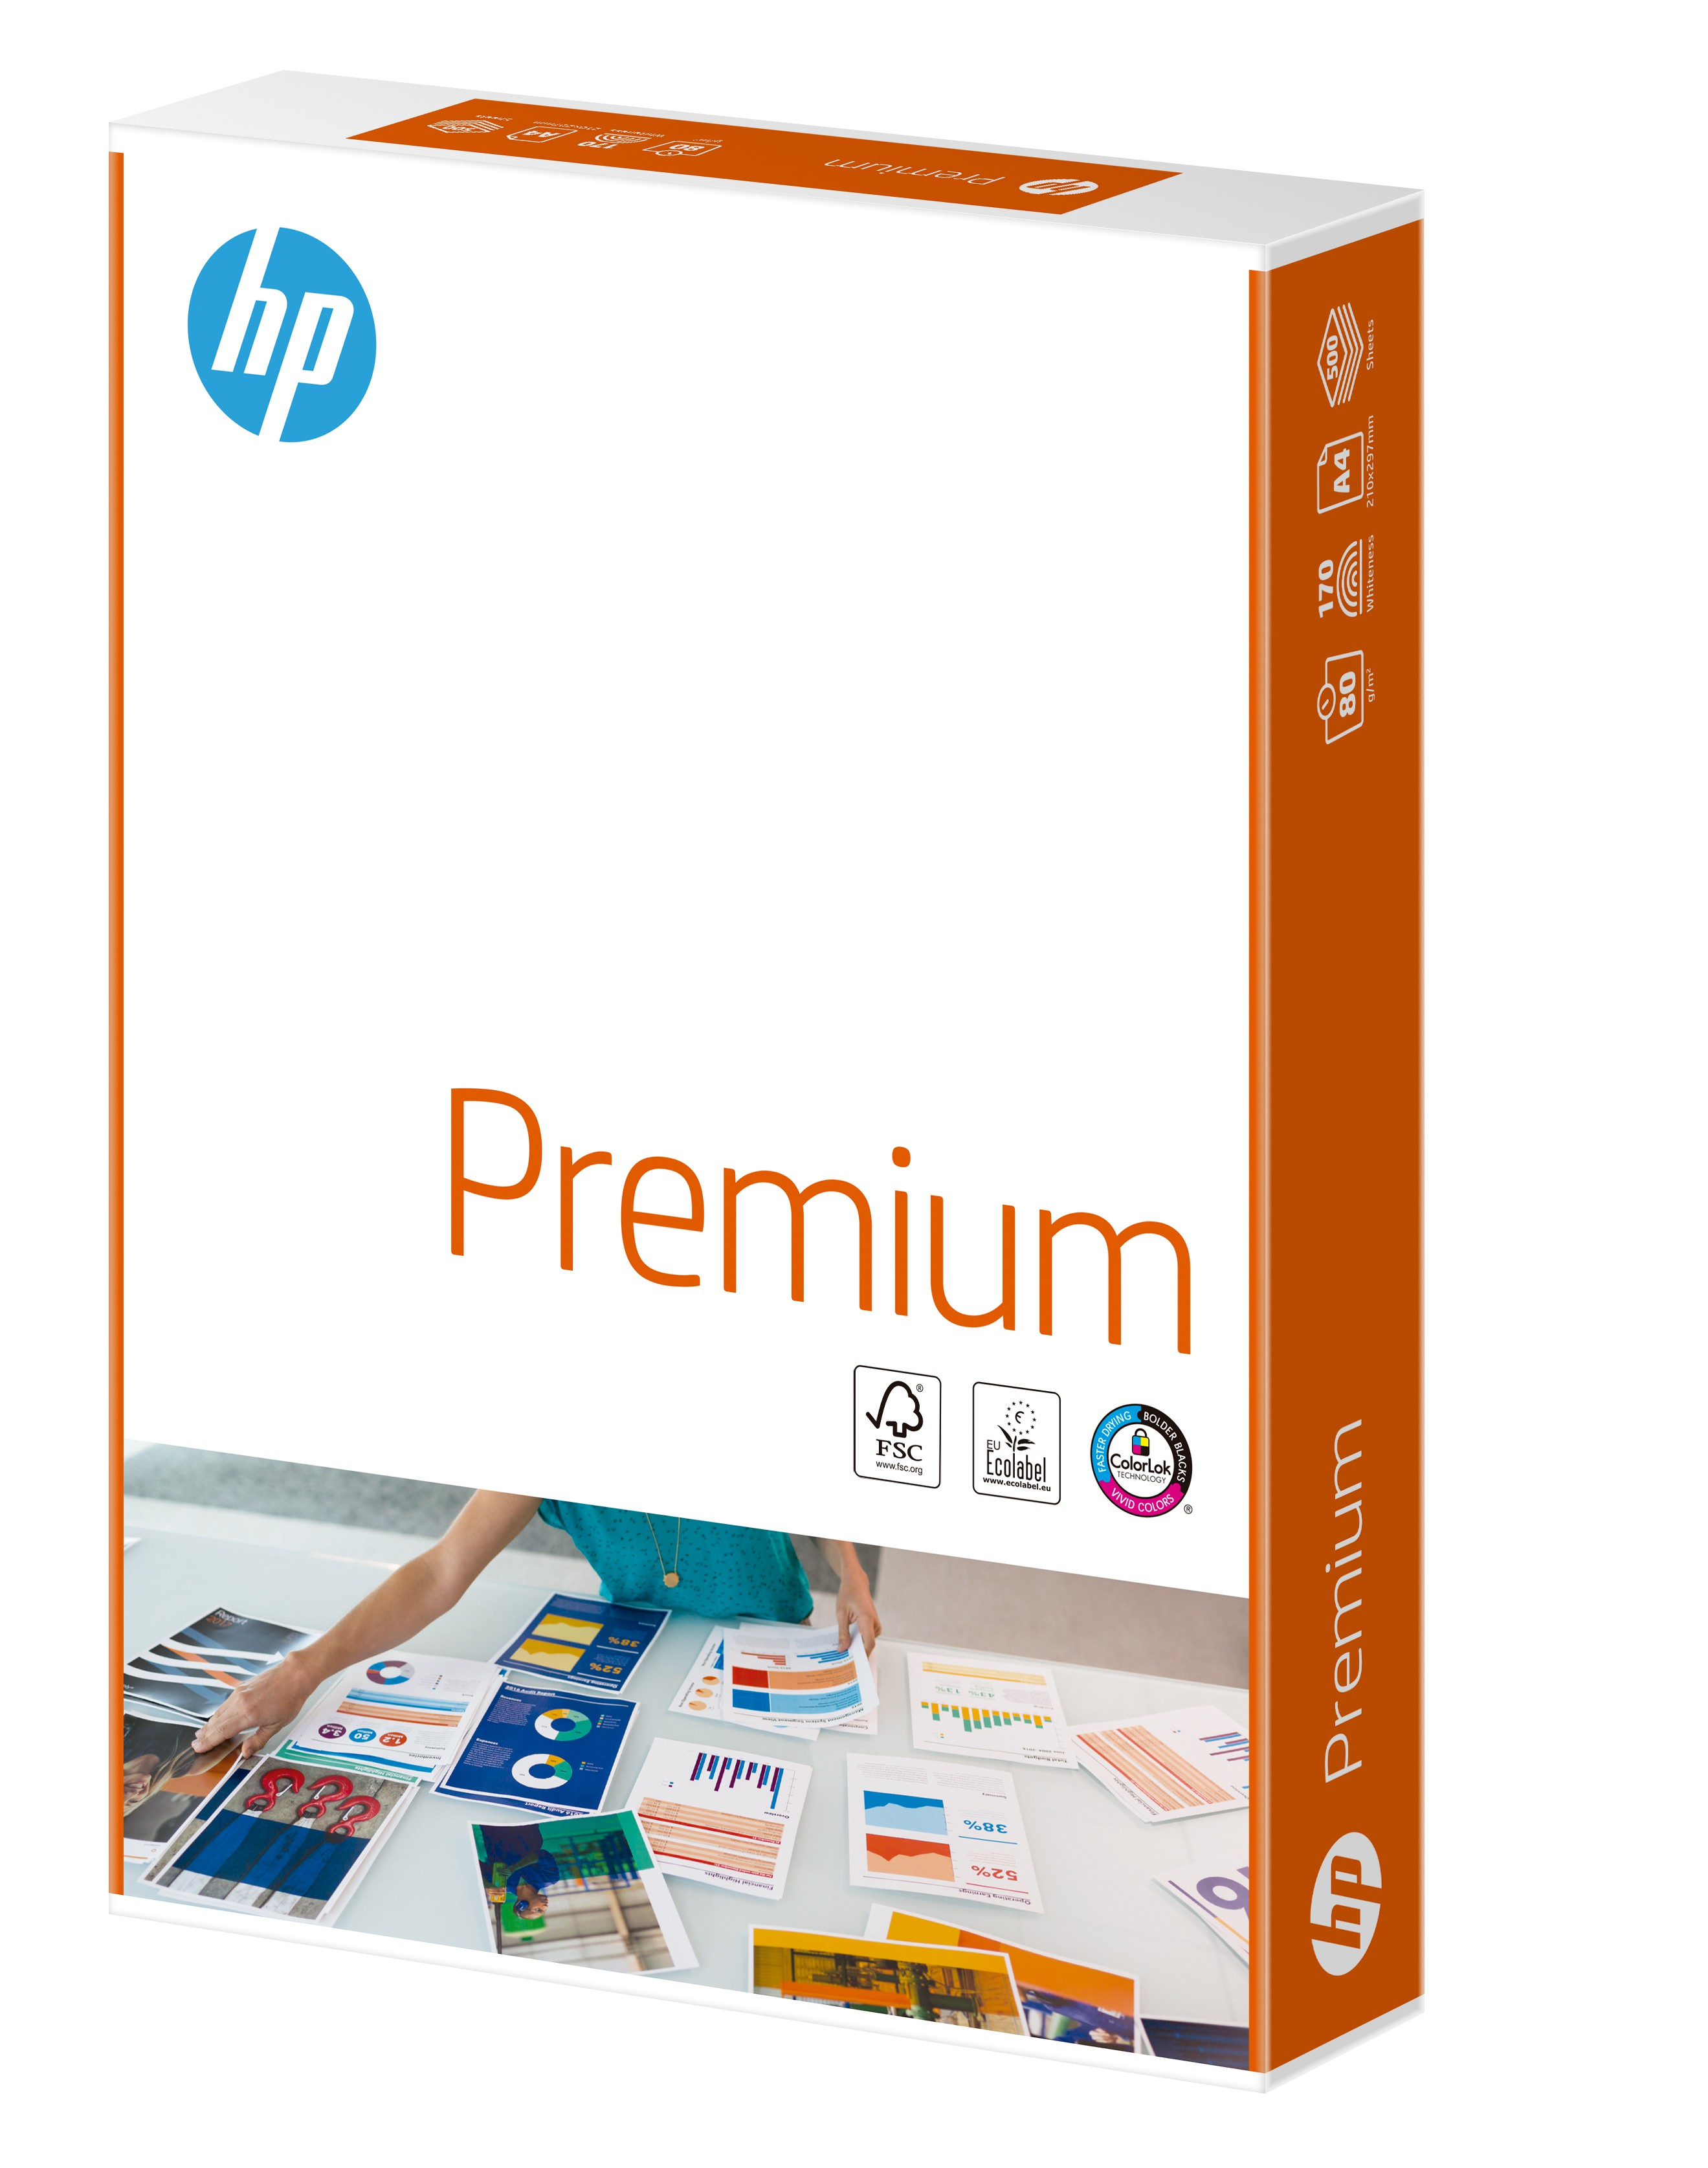 HP Premium Paper Multifunction 80gsm A3 White FSC Colorlok (Ream of 500 Sheets) CHP220